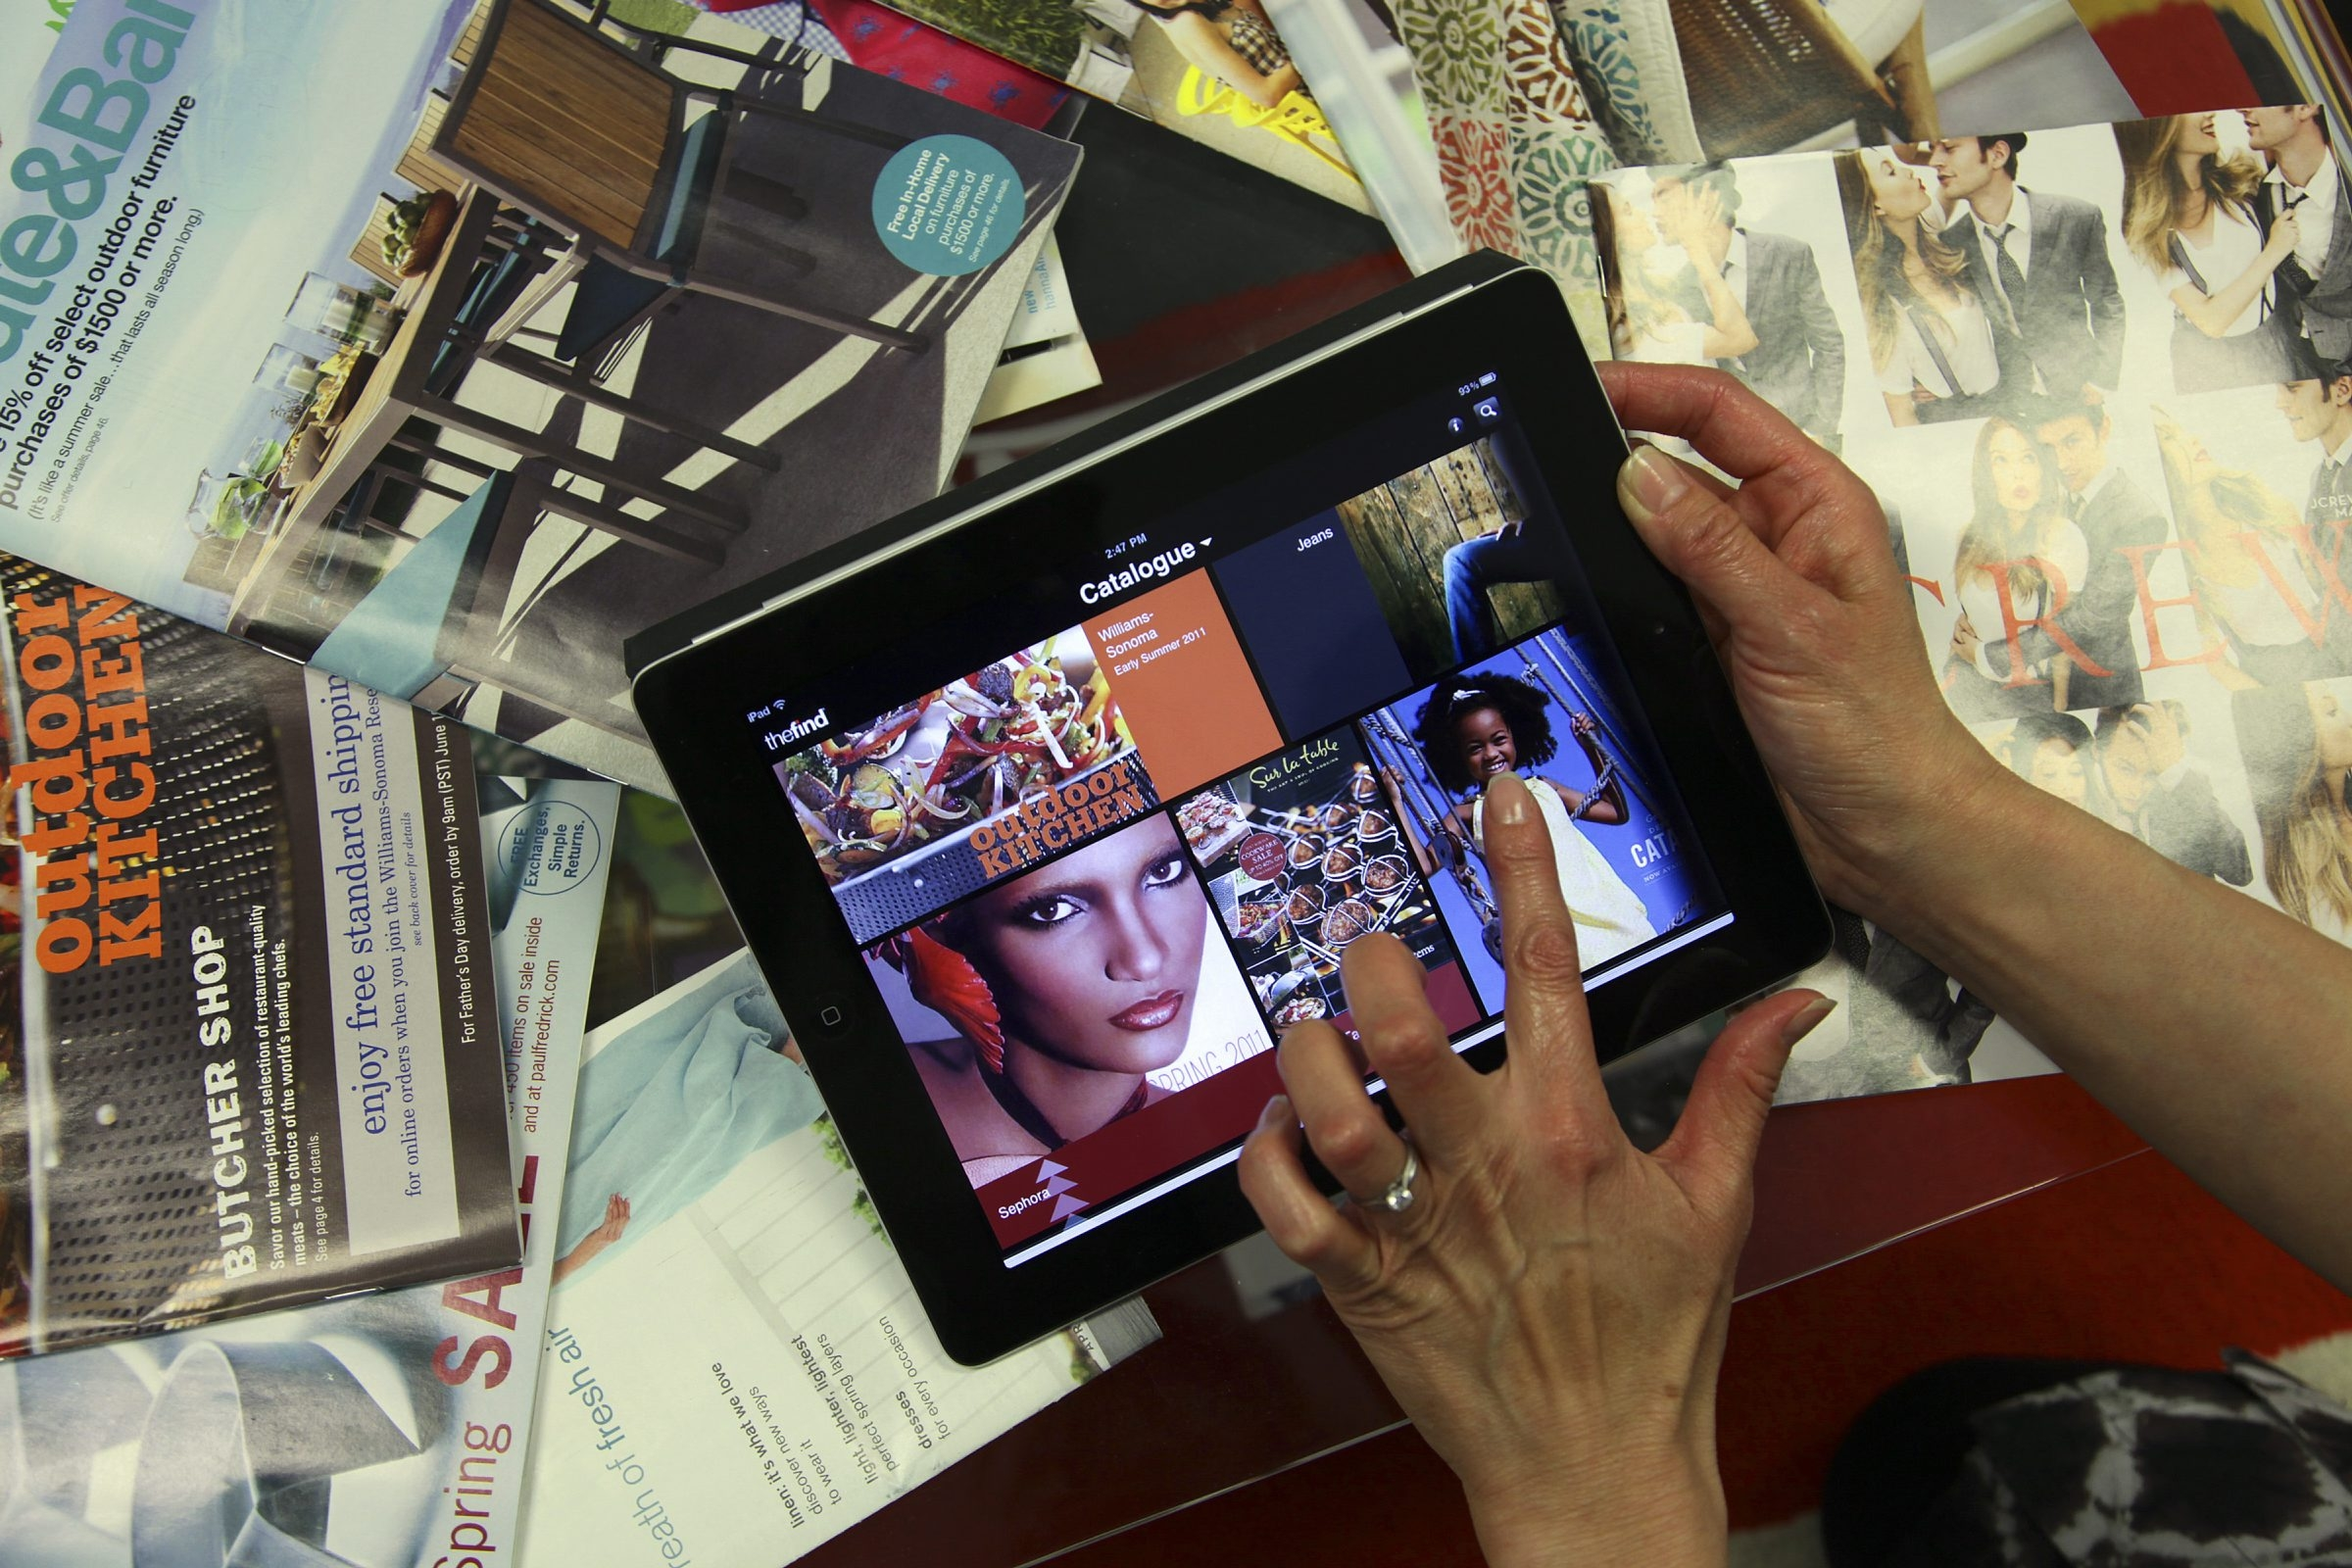 Retailers think they've found a way to give online shopping more of the feel of a trip to the mall or time with a catalog, by creating apps for tablet computers that resemble magazines.